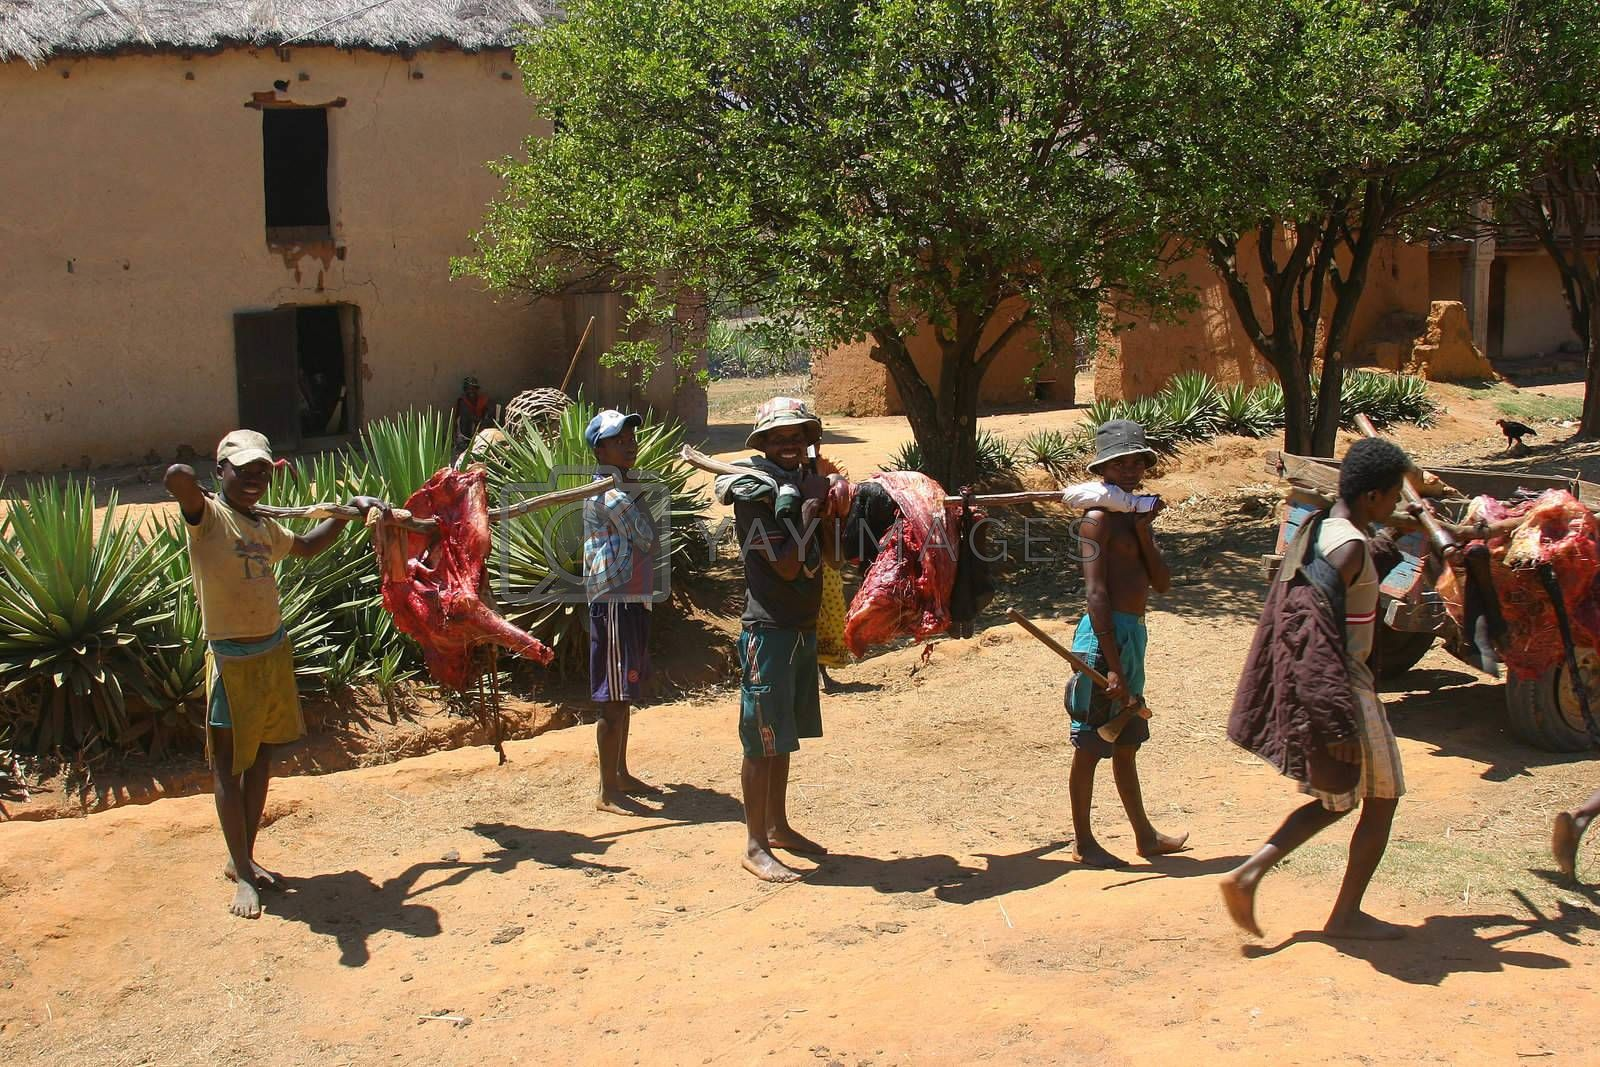 Villagers carrying the freshly butchered meat to the village